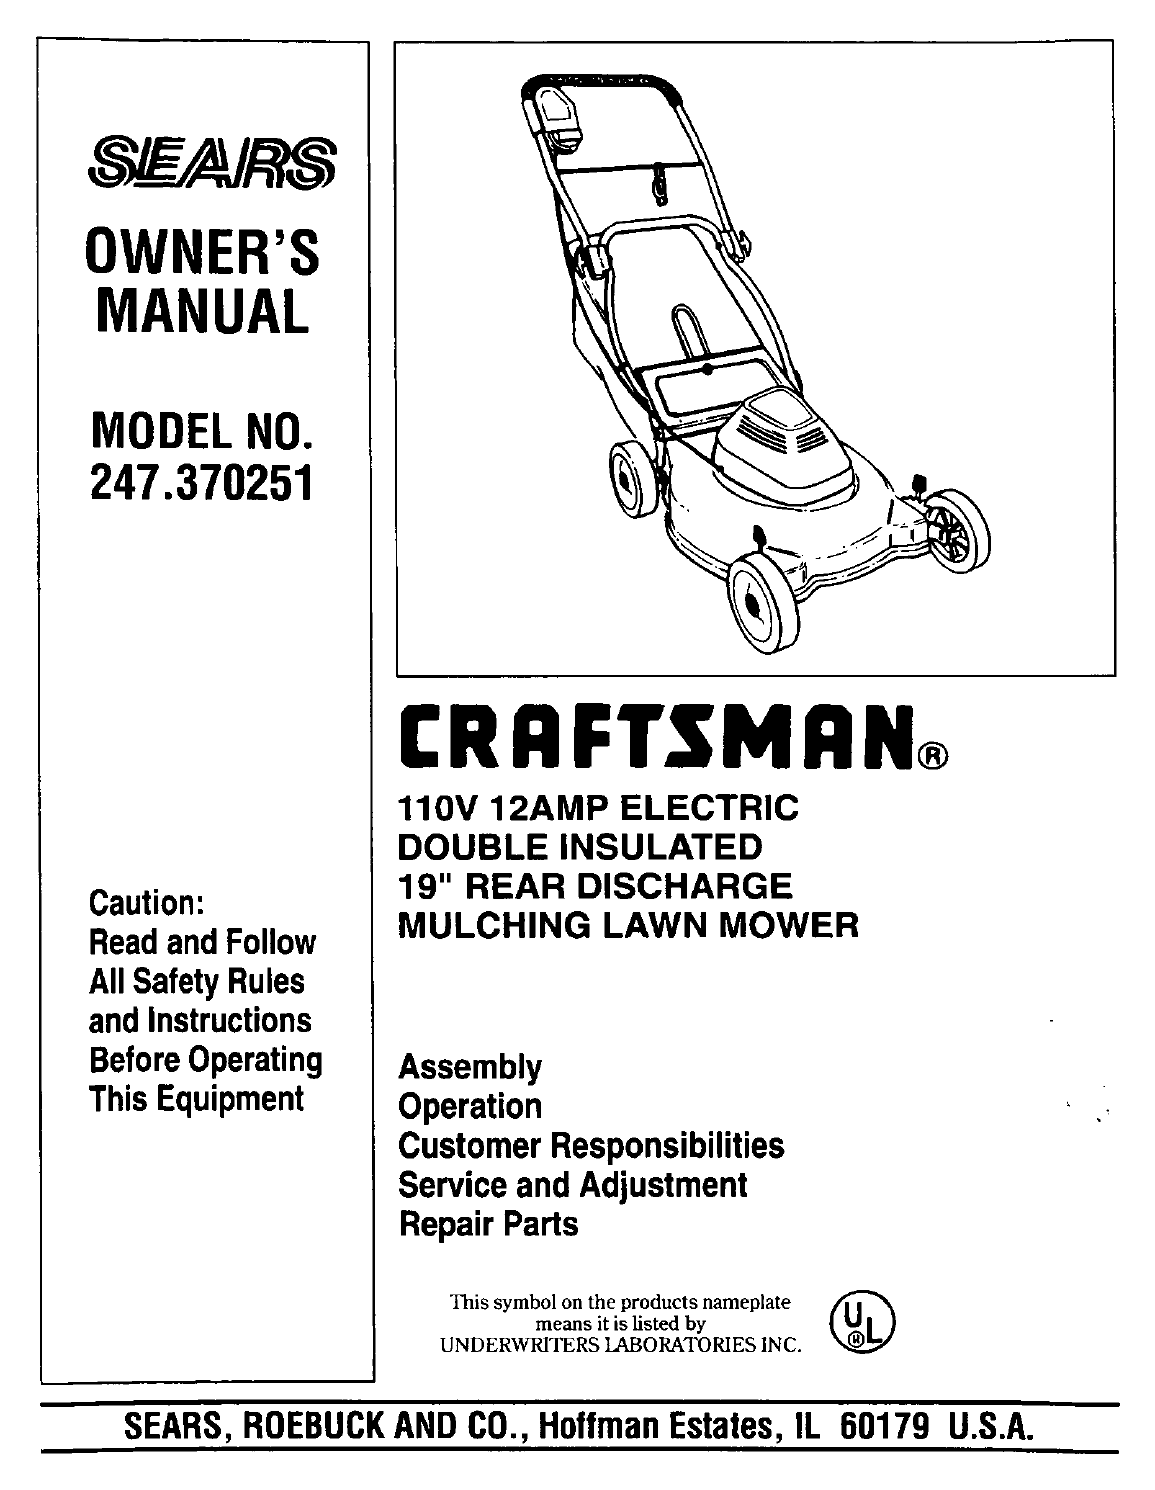 Craftsman Lawn Mower 247.370251 User Guide